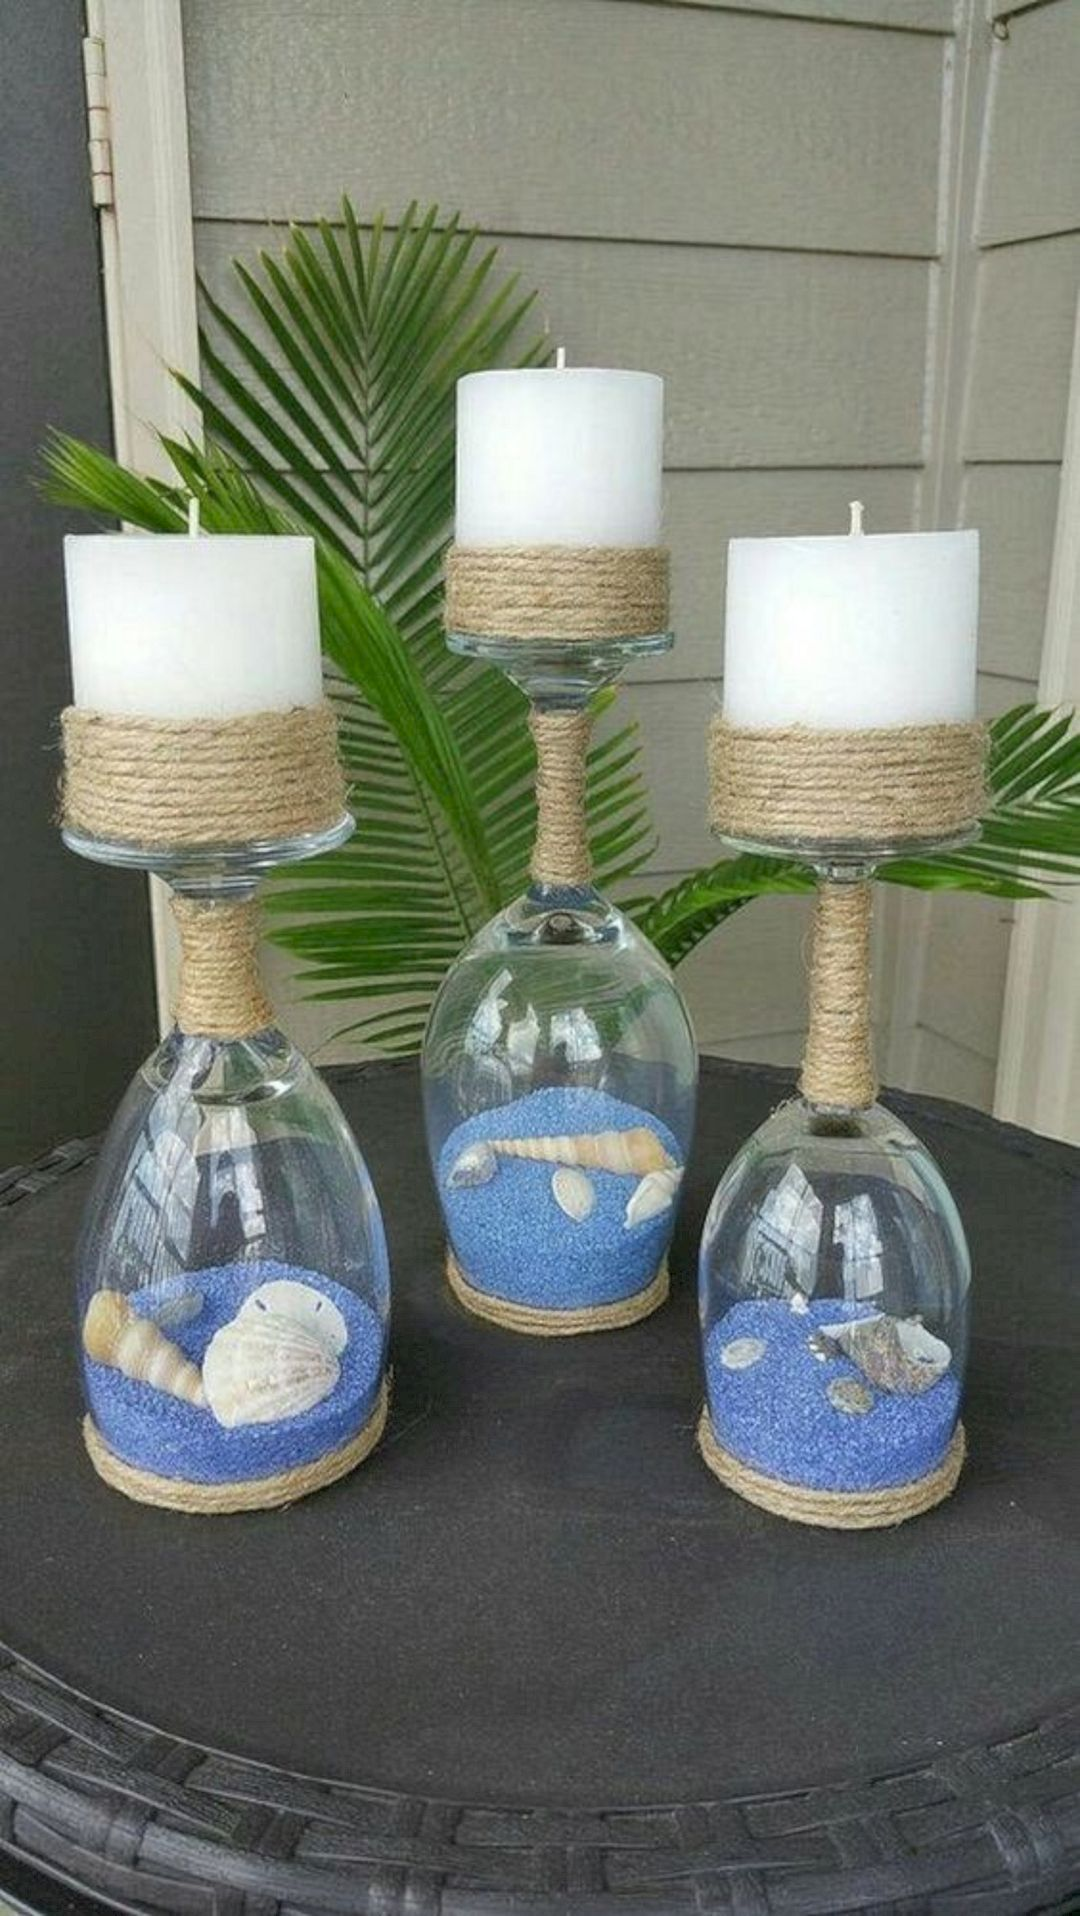 Pin By Lottie Huffman On Shante Harrison S Wedding In 2020 Diy Wedding Decorations Centerpieces With Wine Glasses Wine Glass Centerpieces